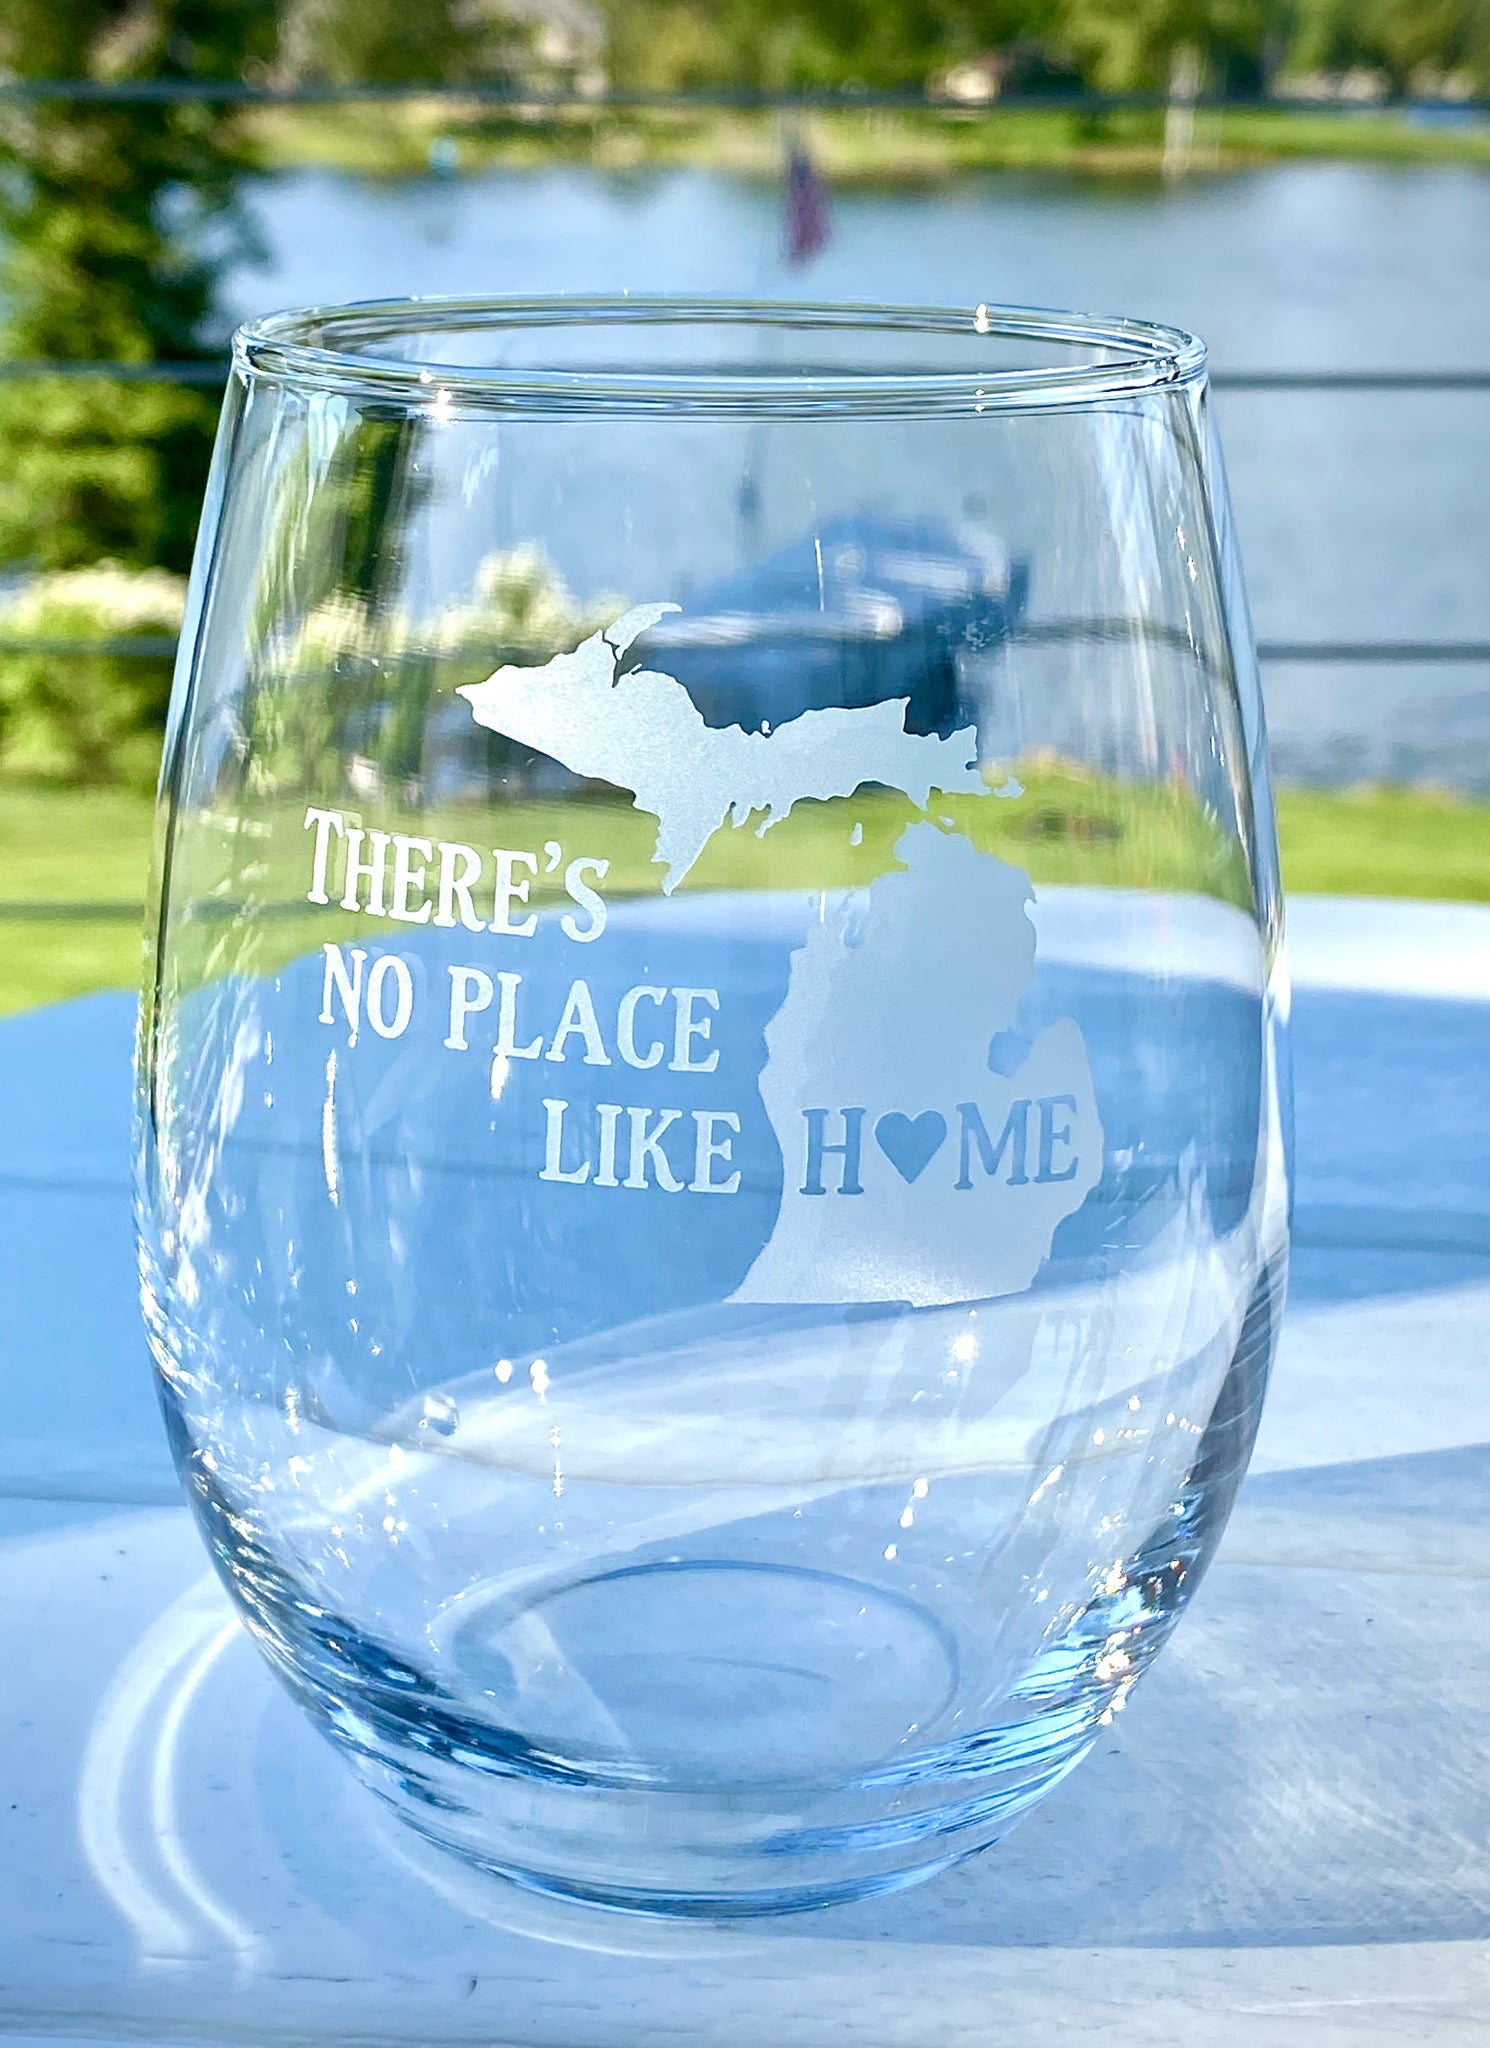 Stemless wine glass - there's no place like home